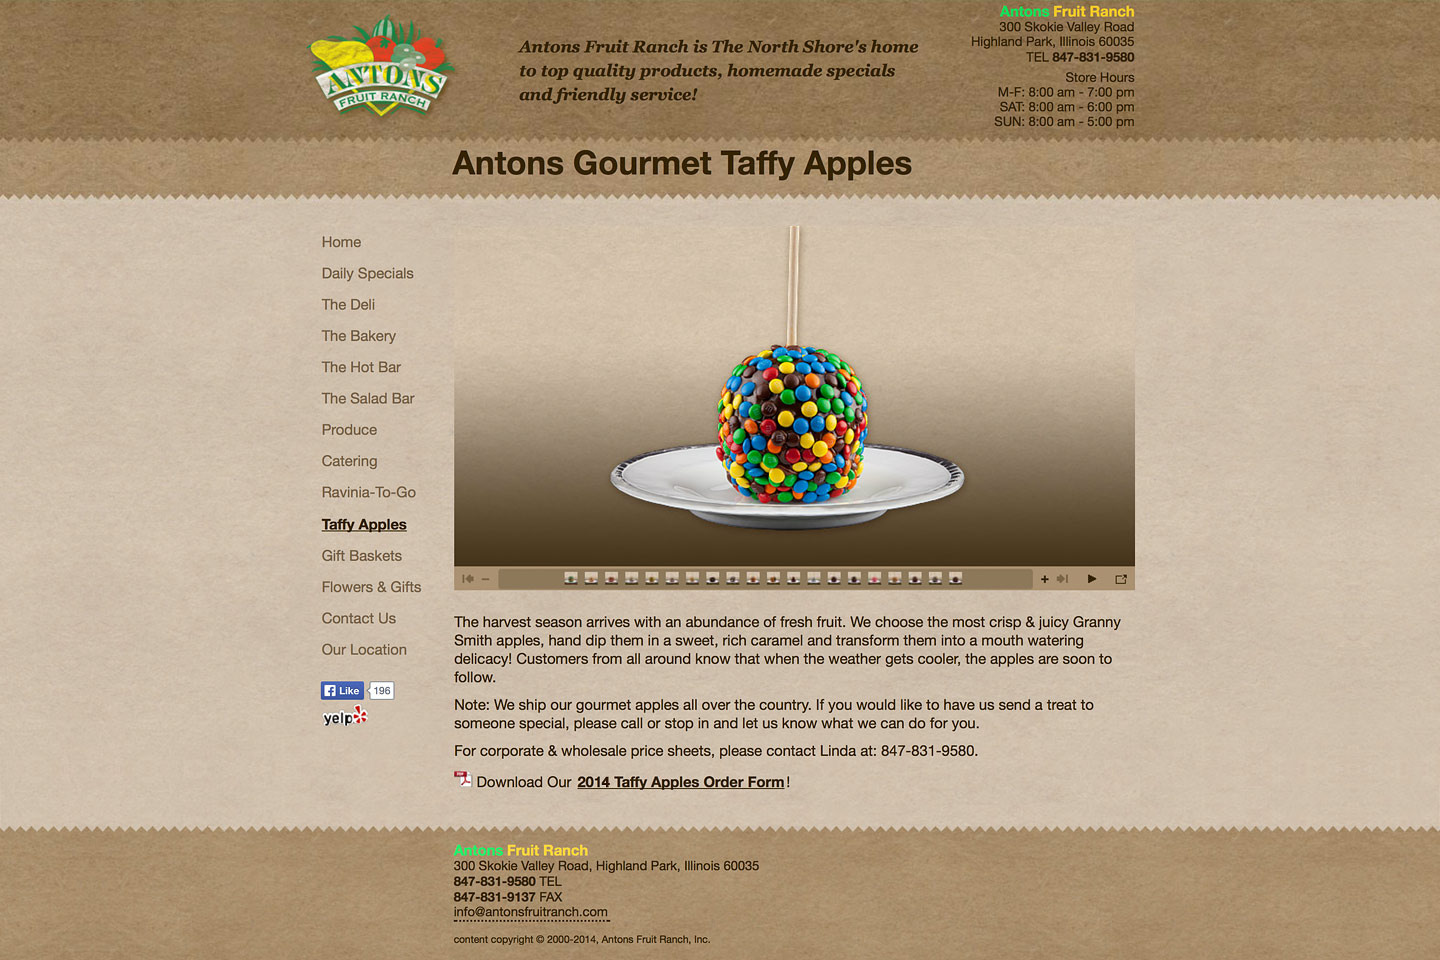 a screen capture of the antons gourmet taffy apple page, featuring a delicious m&m taffy apple